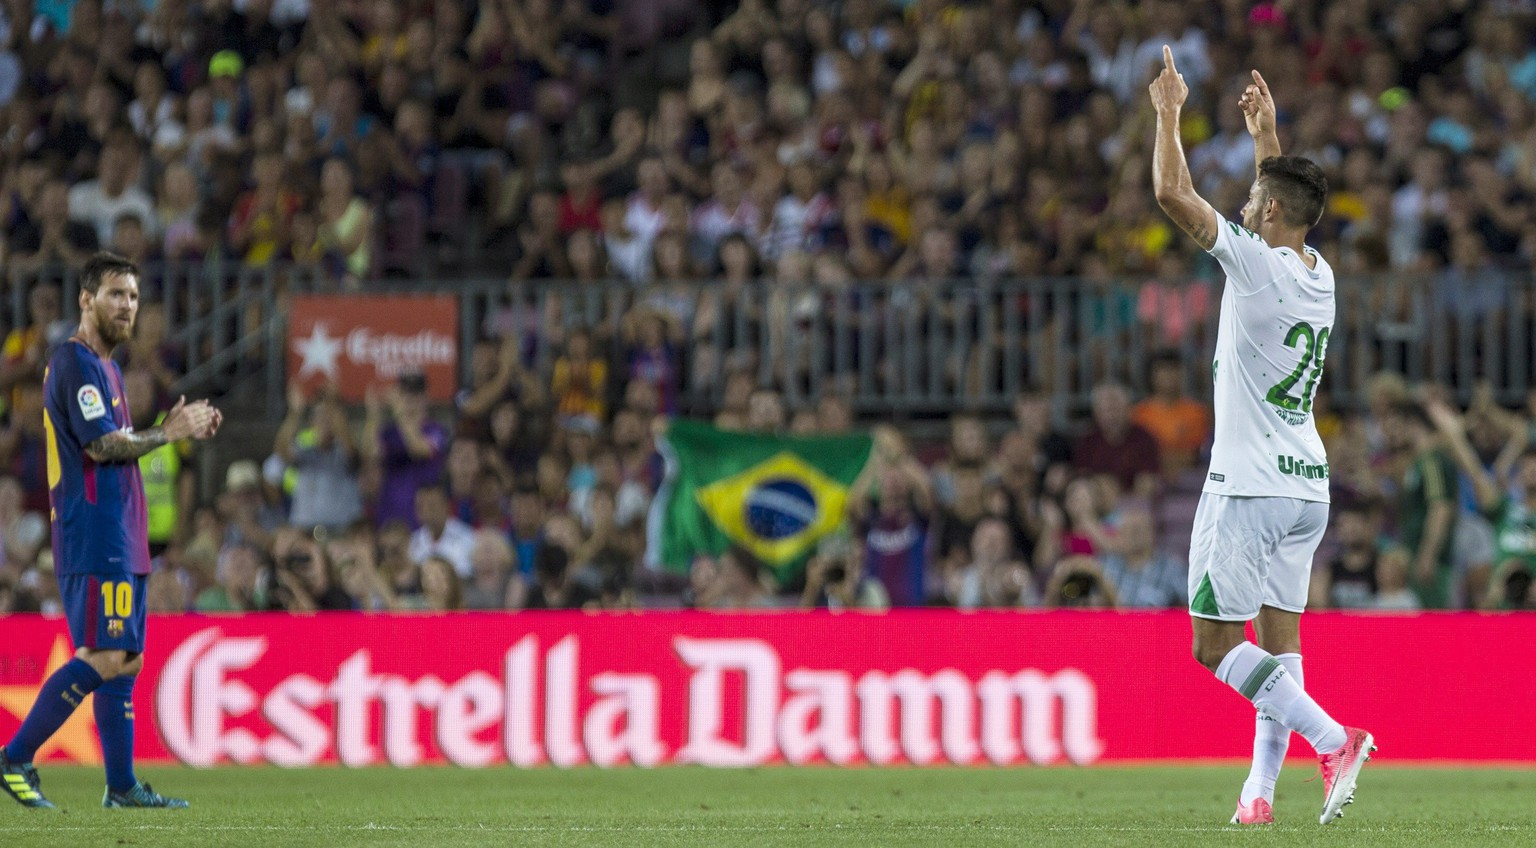 epa06130762 Chapecoense's Alan Ruschel (R) points at heaven during a Joan Gamper Trophy match between FC Barcelona and Chapecoense at the Camp Nou stadium in Barcelona, Catalonia, Spain, 07 August 2017.  EPA/Quique Garcia